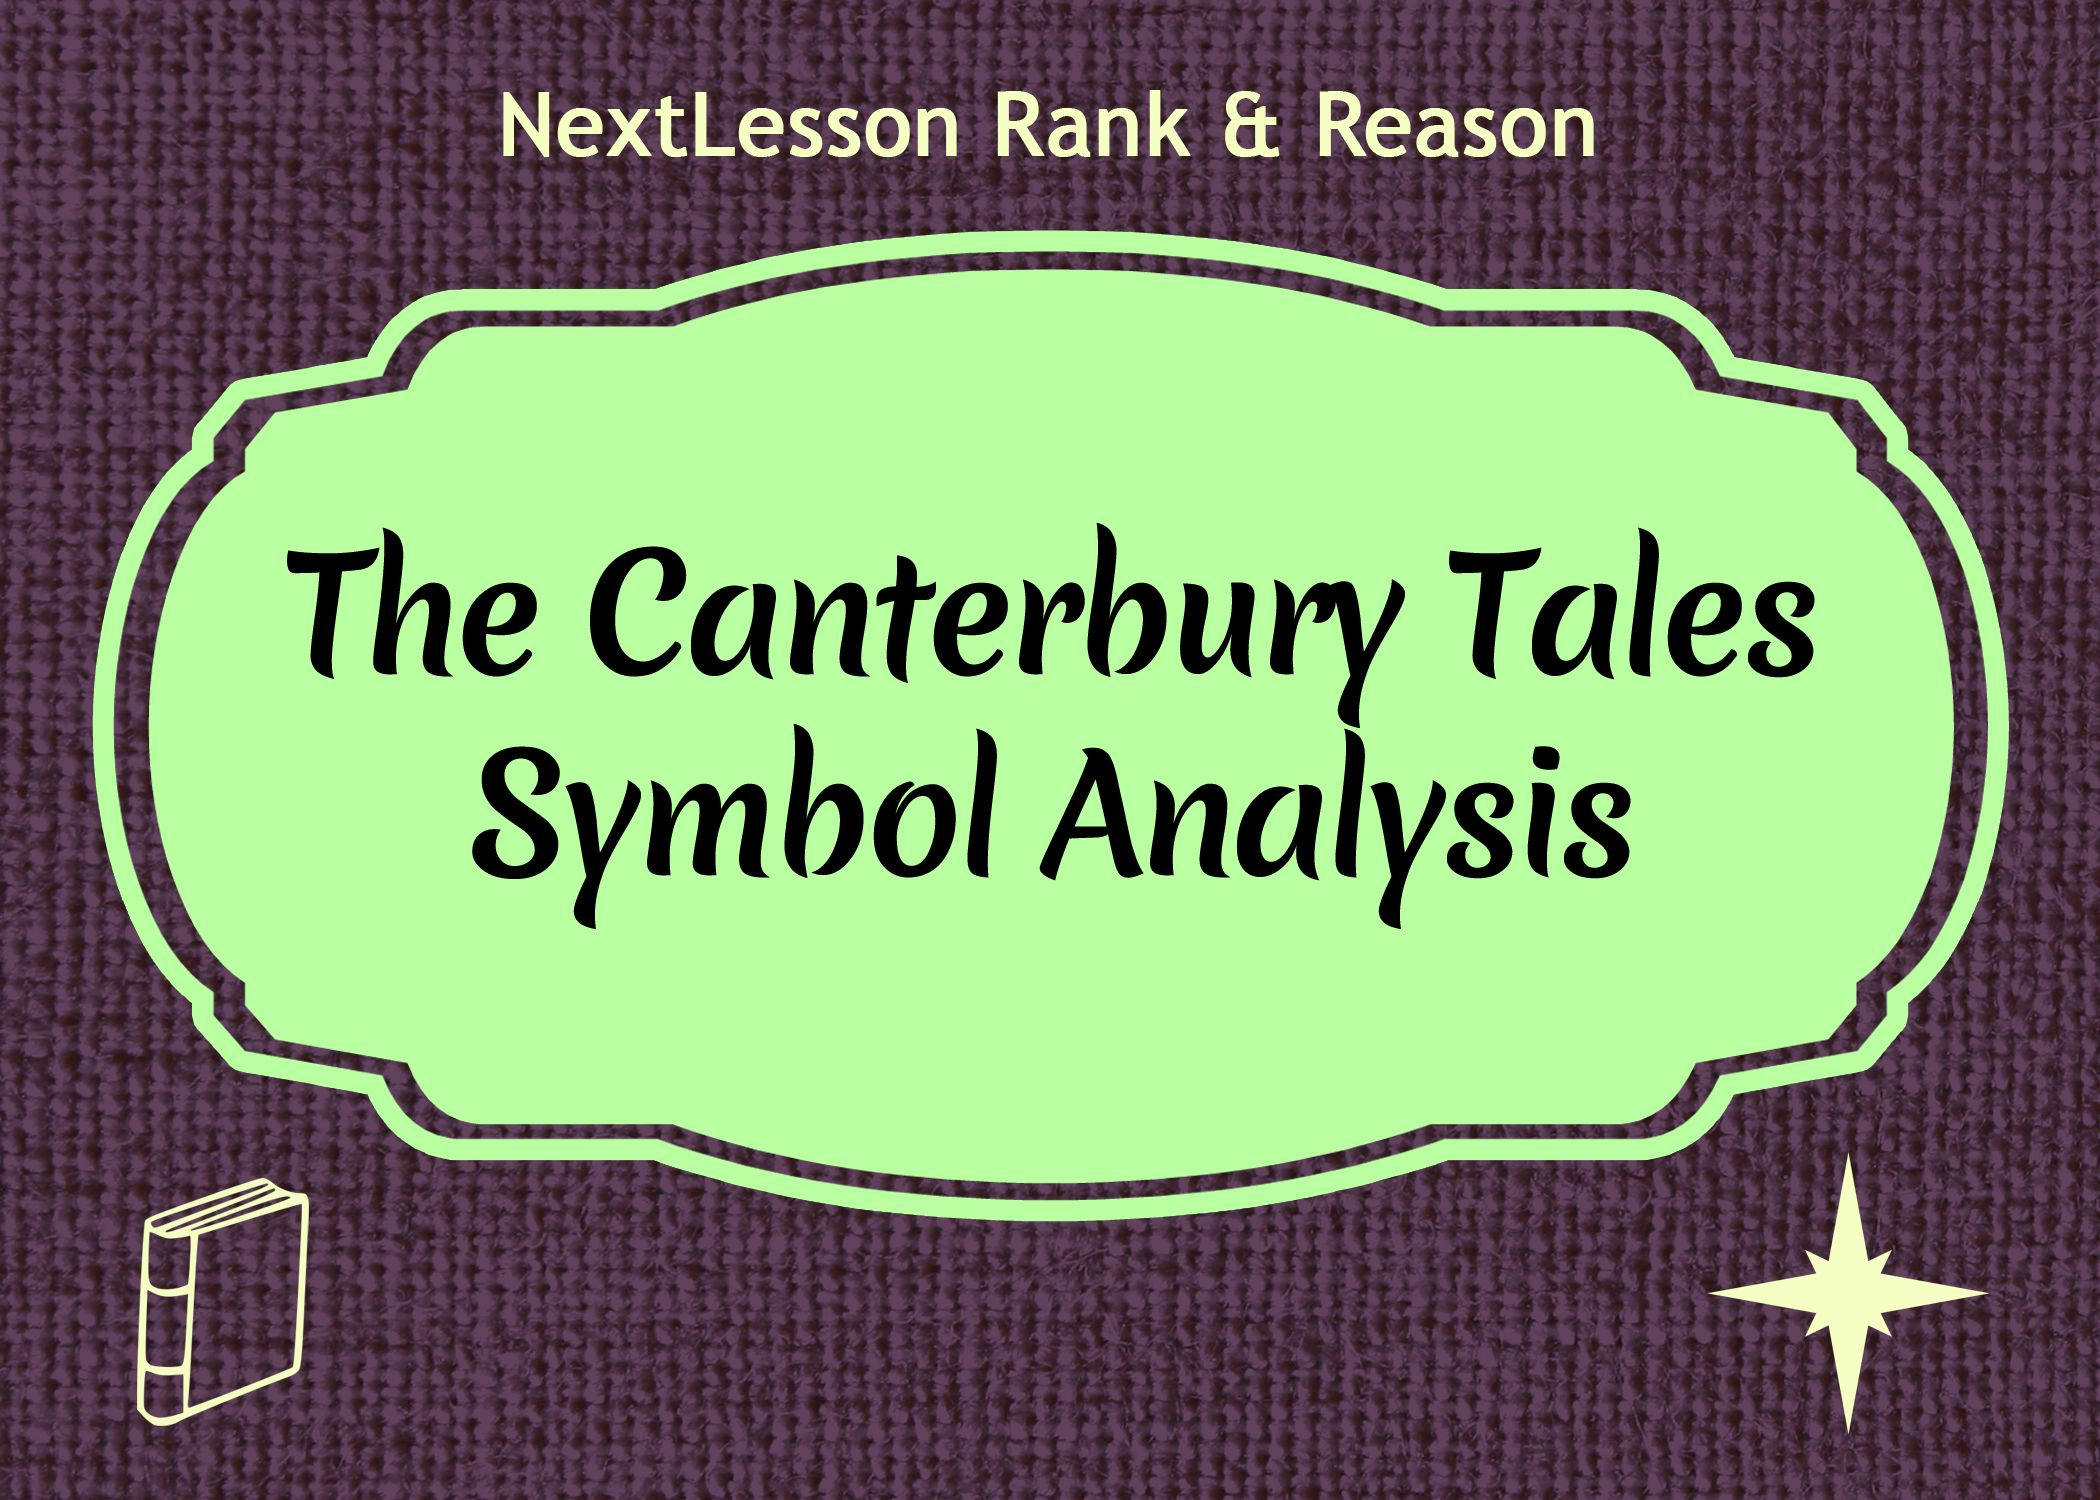 The Canterbury Tales Symbol Analysis - Critical Thinking/problem Solving Skills, Collaboration Skills